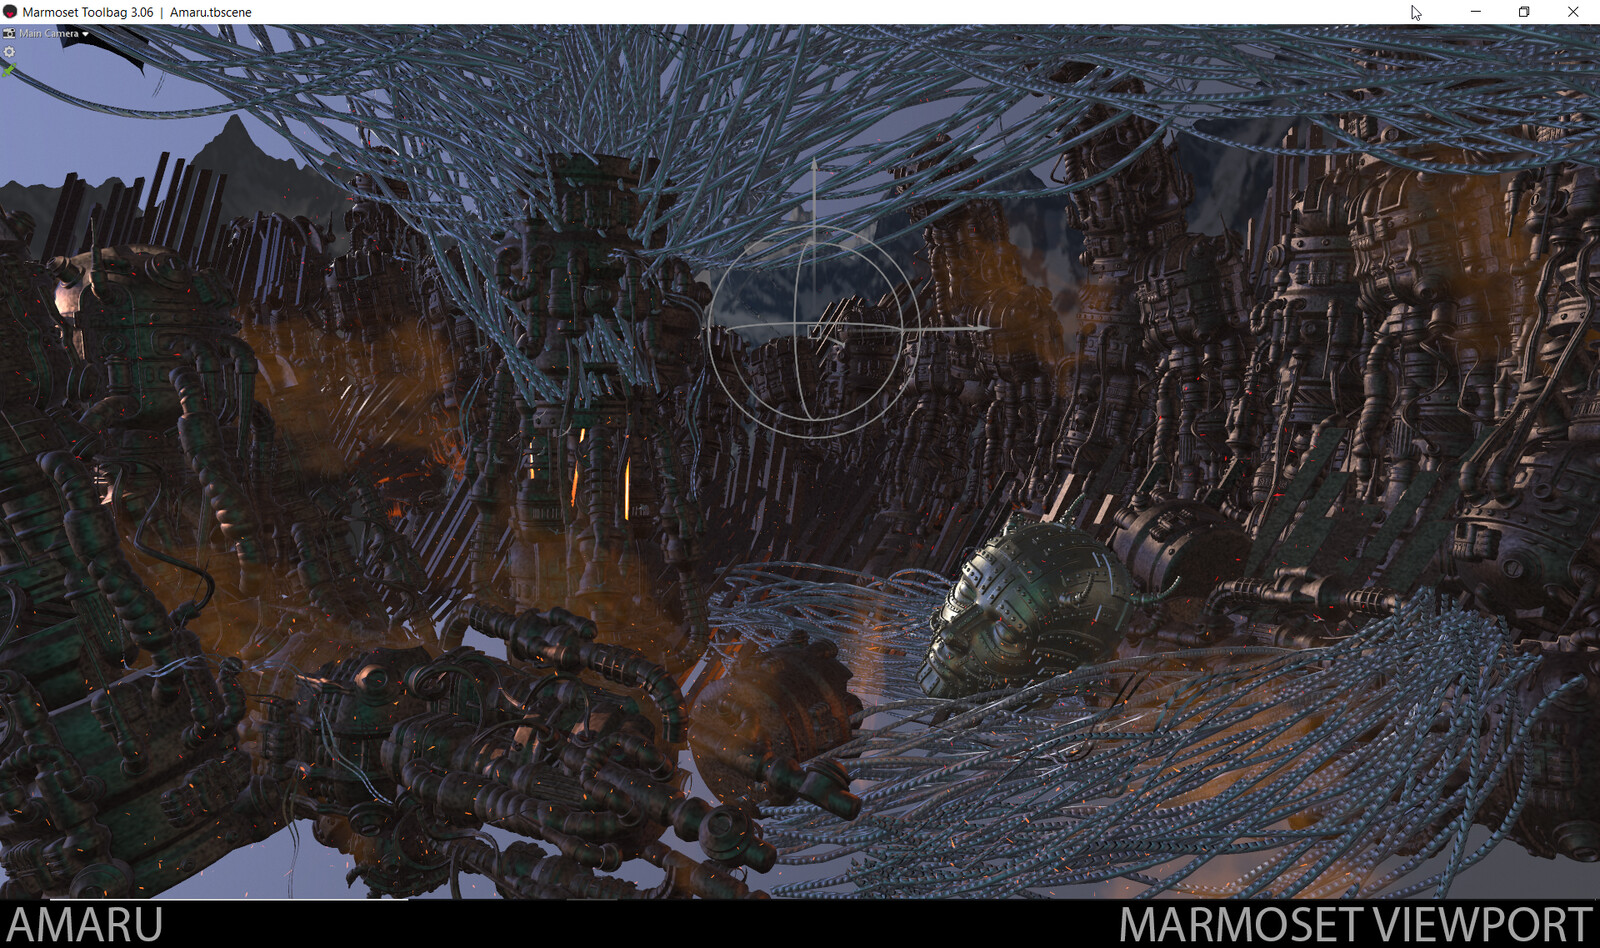 Amaru - The entire scene was put together in Marmoset Toolbag.